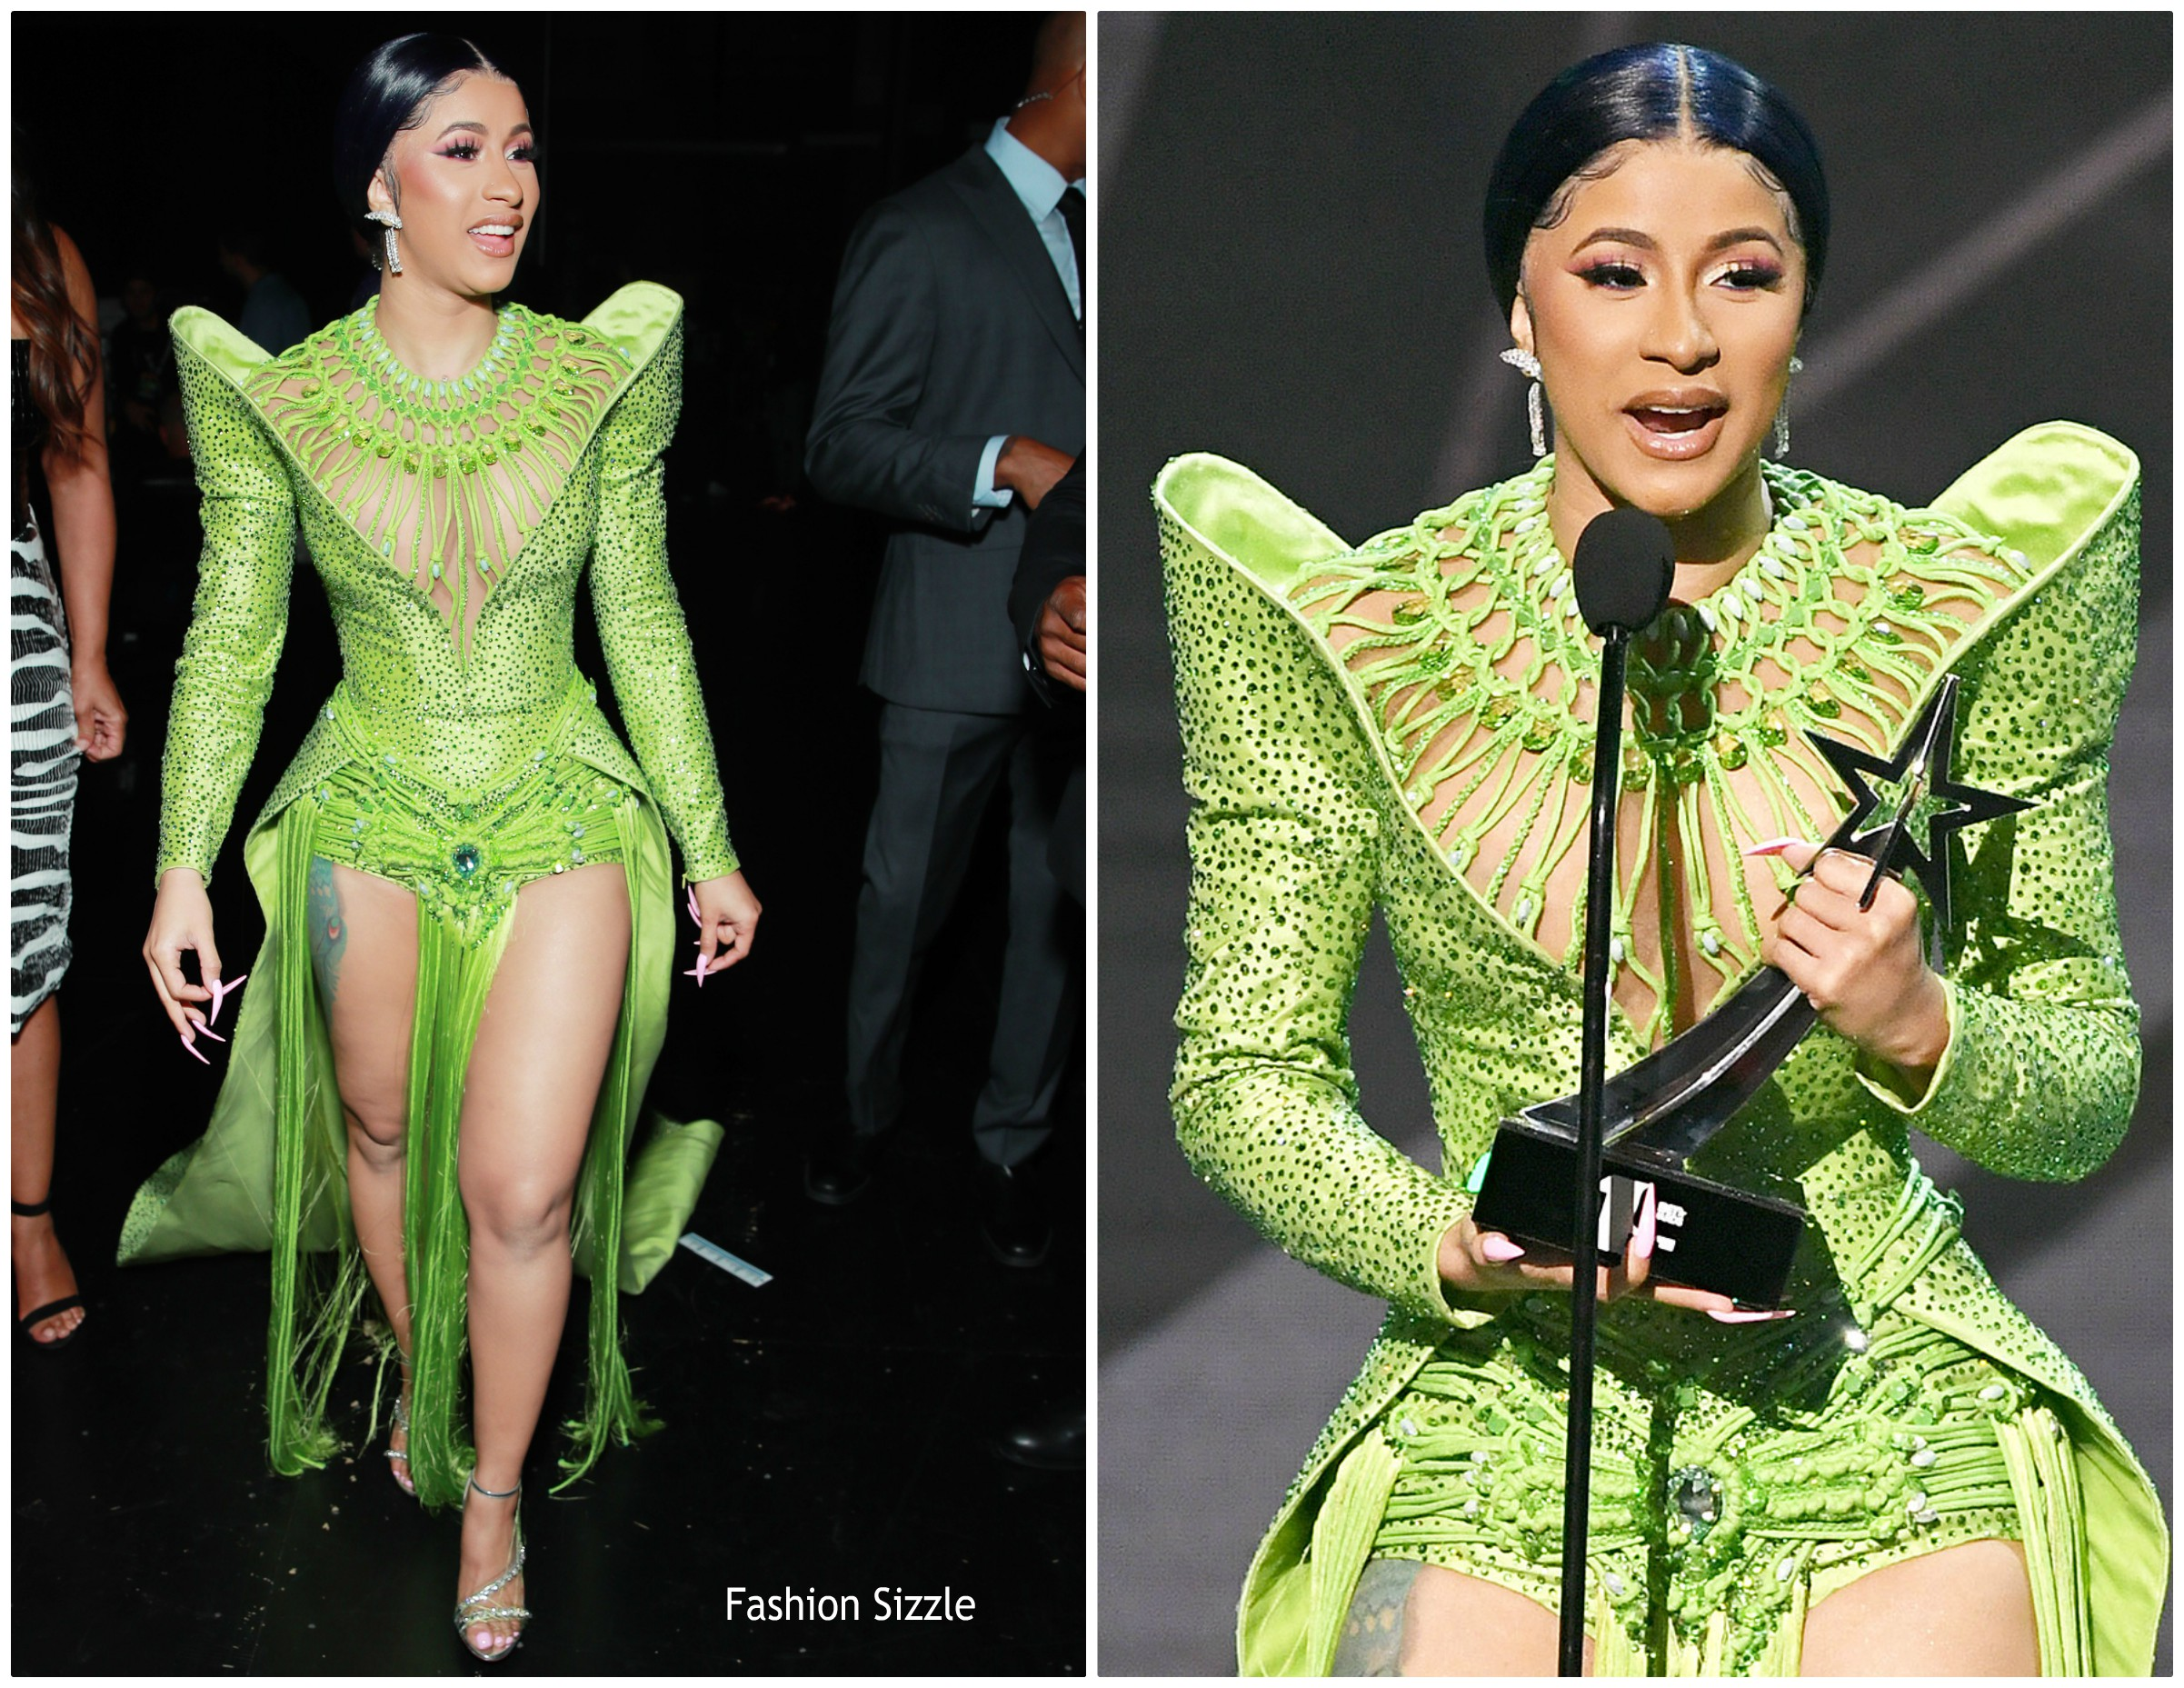 cardib-in-nicolas-jebran-2019-bet-awards